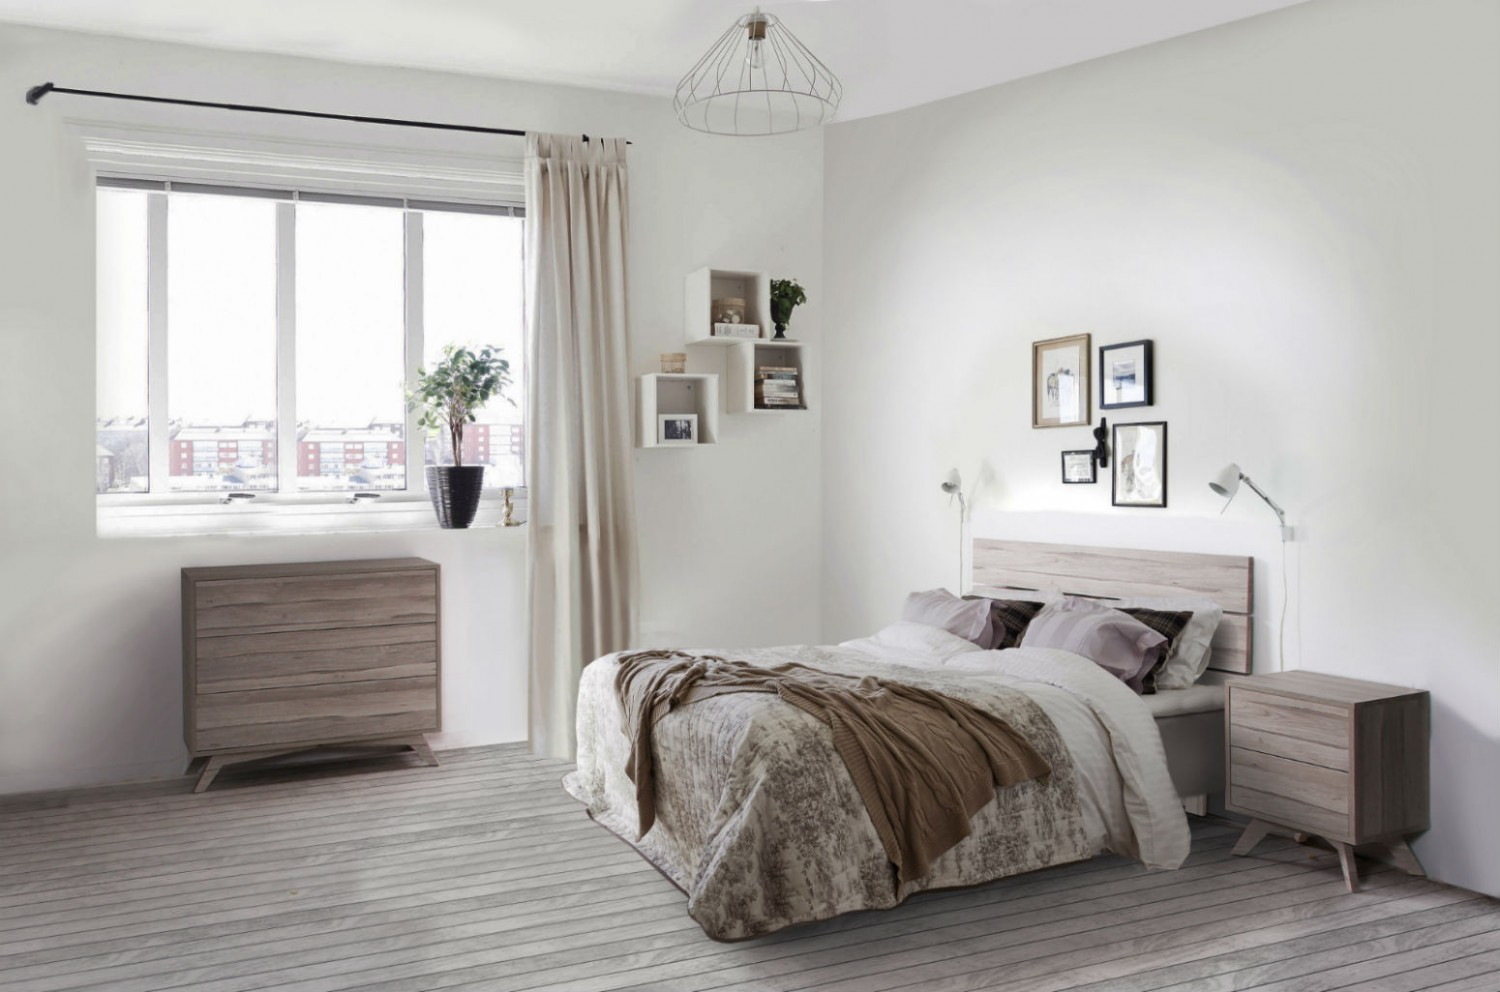 Best Chambre Style Campagne Anglaise Images Design – HOME PLANS